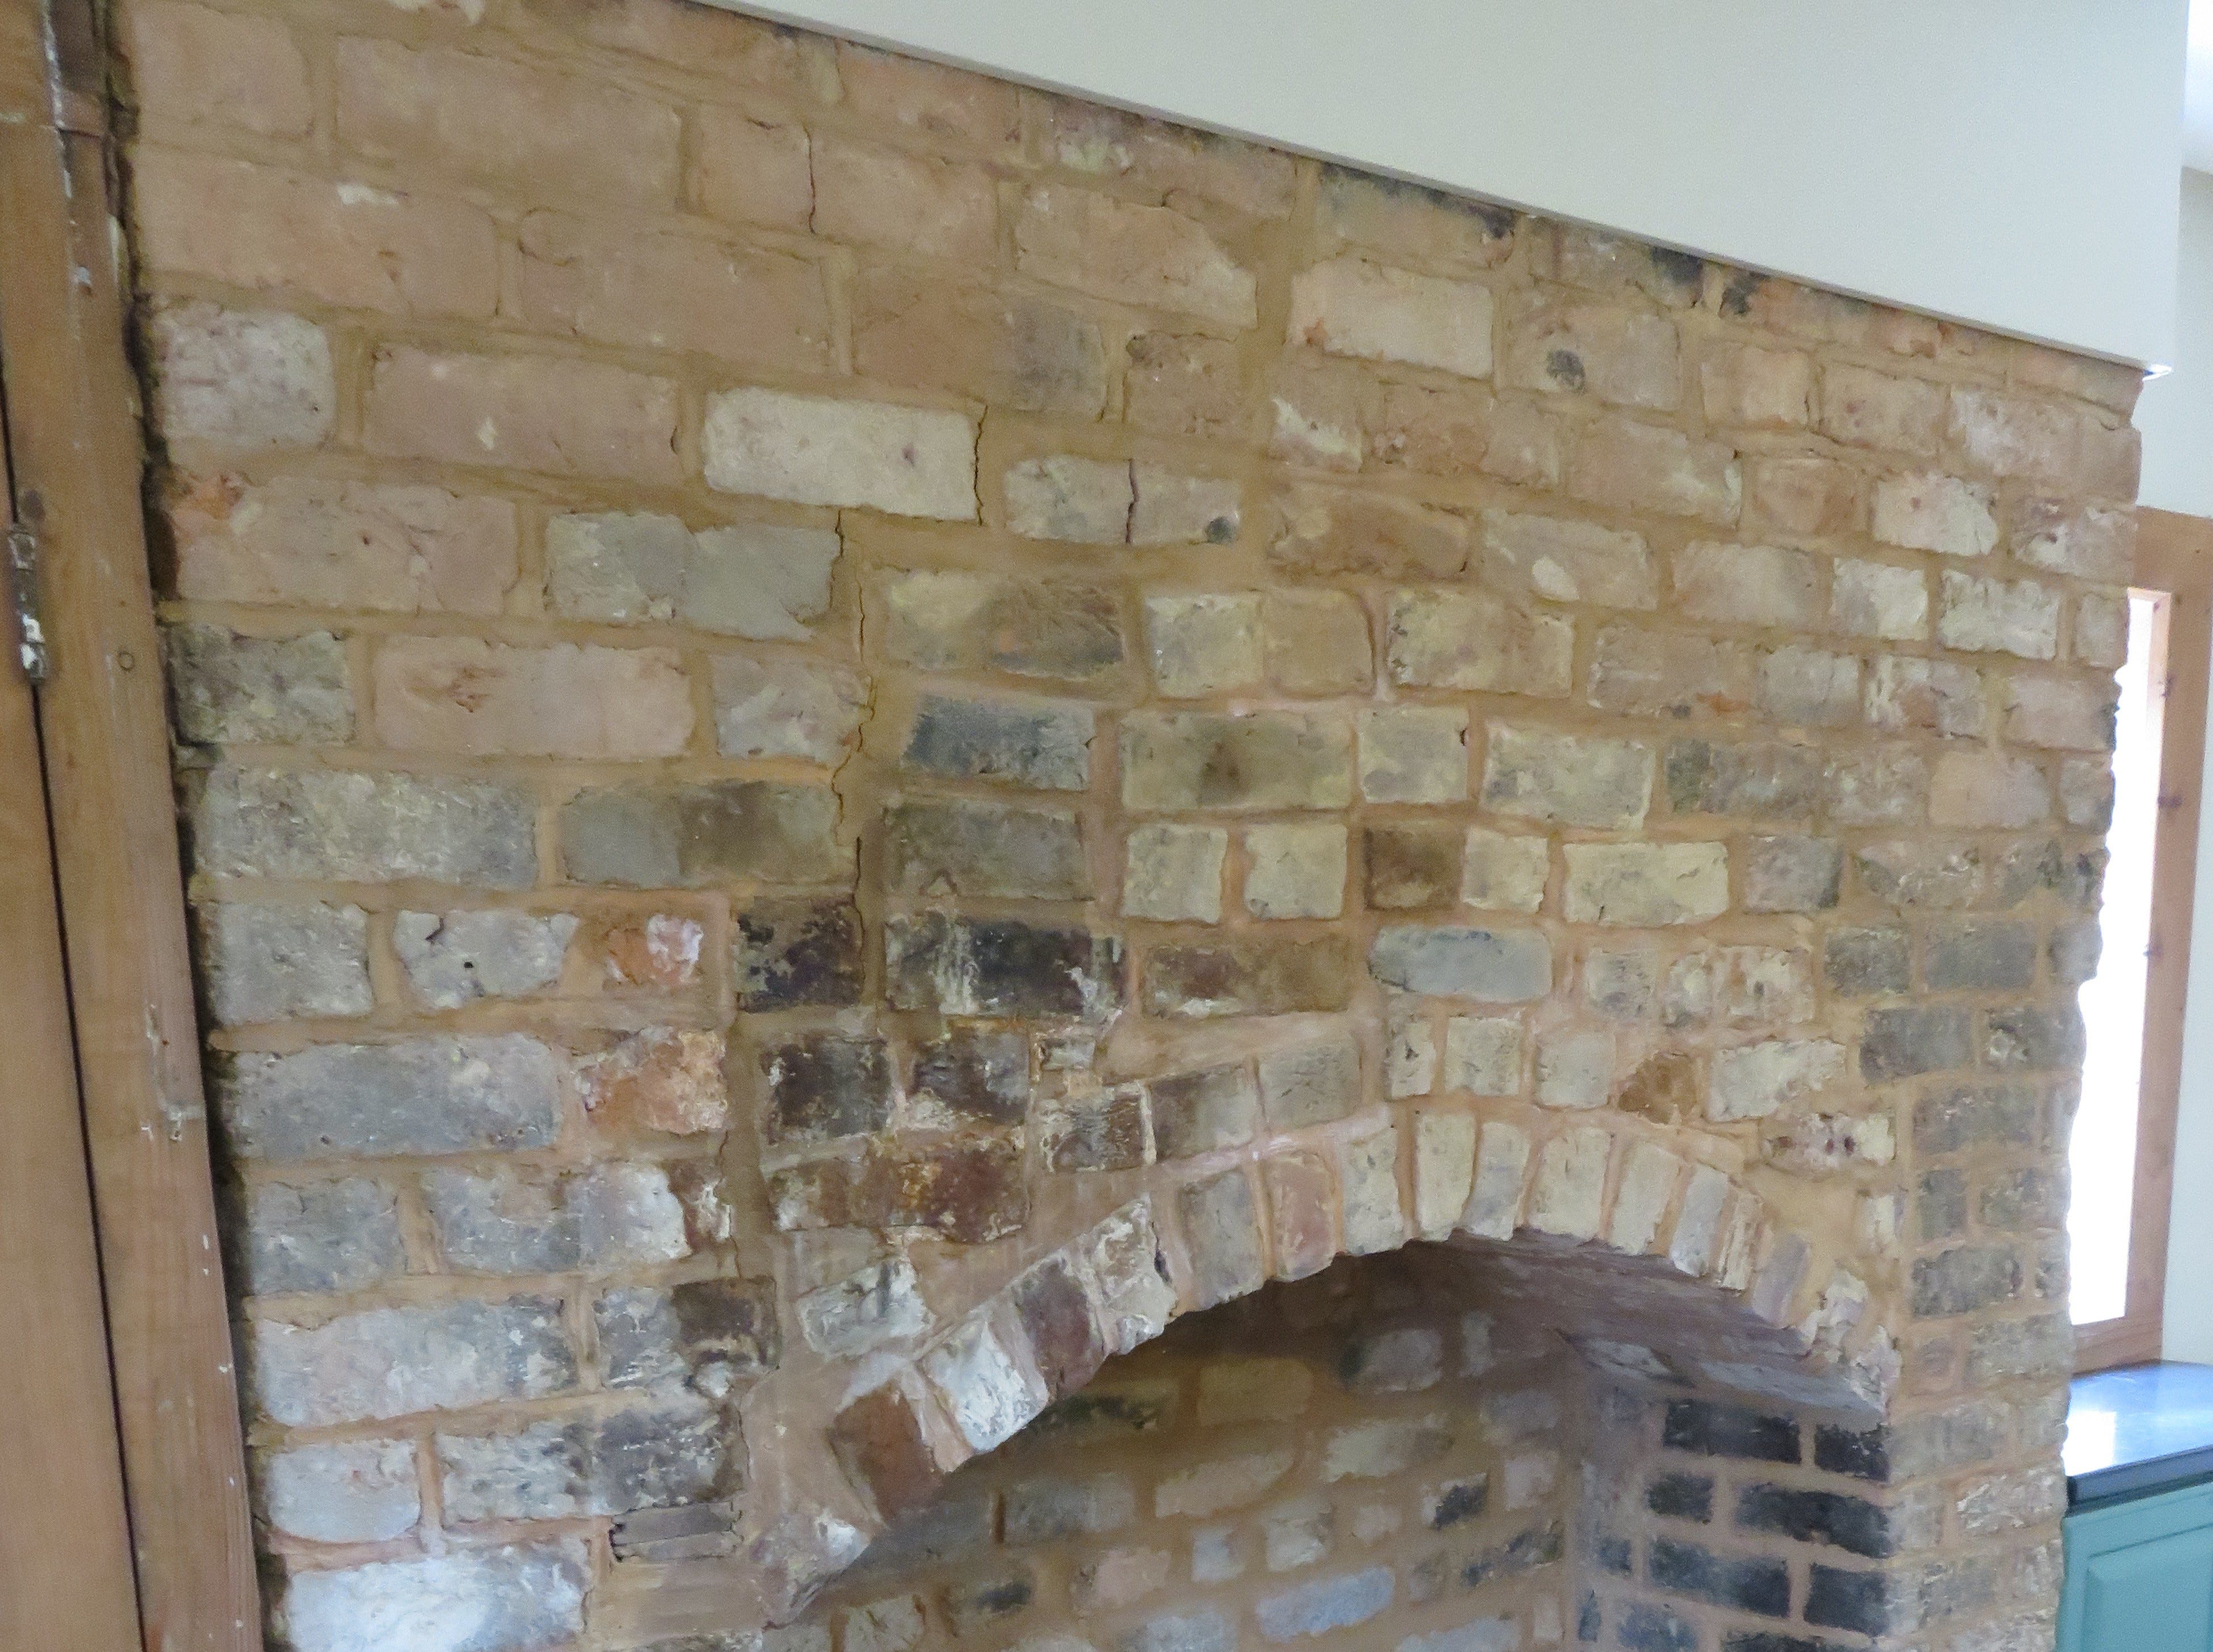 Largest former brick fireplace in Lones-Dowell home.